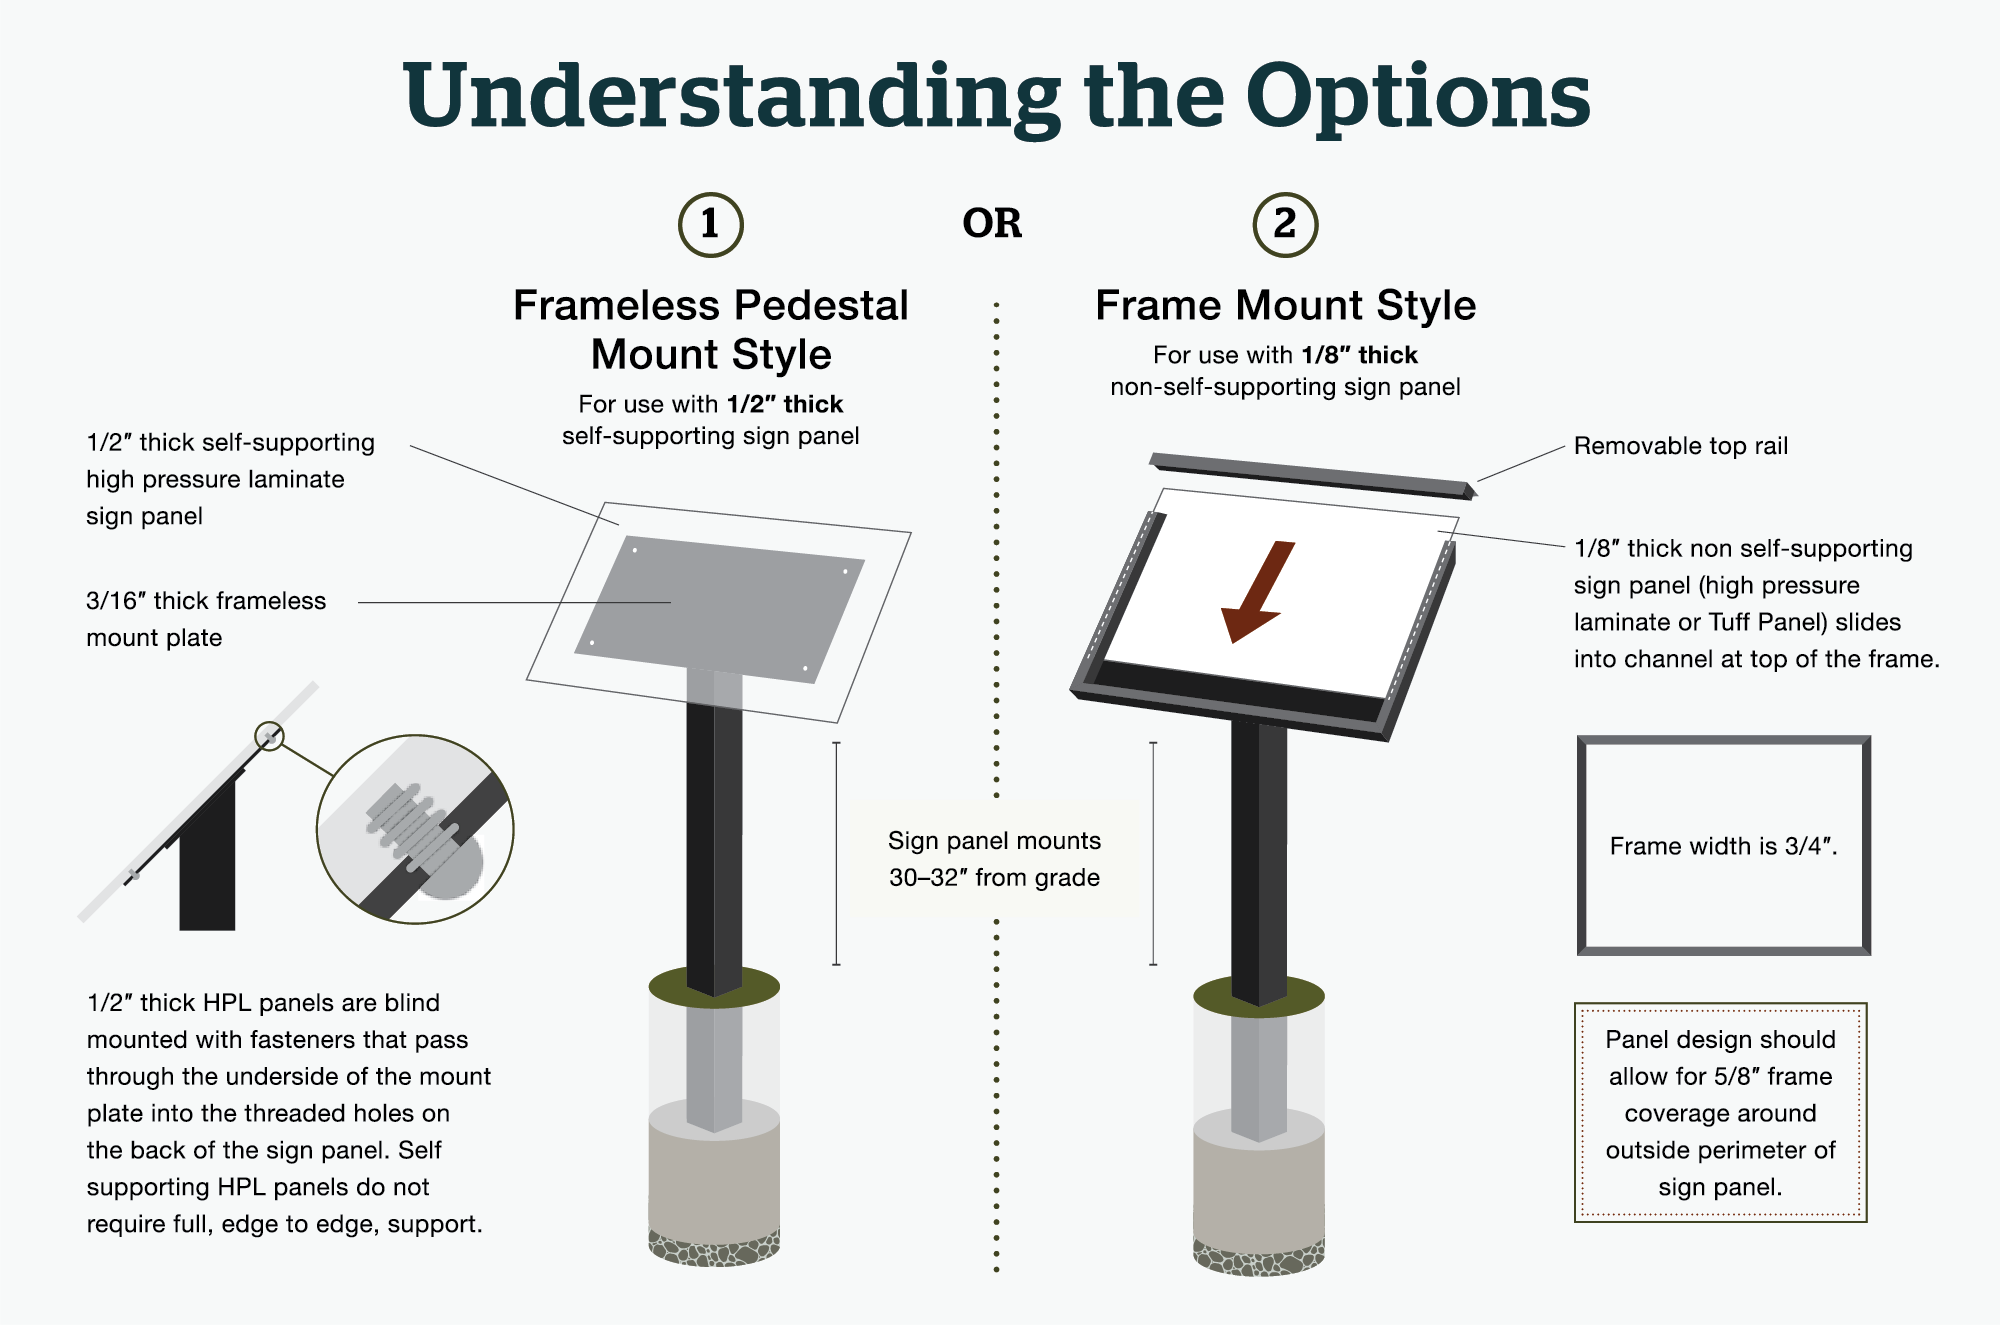 Details and specifications of frame and frameless angle mount styles